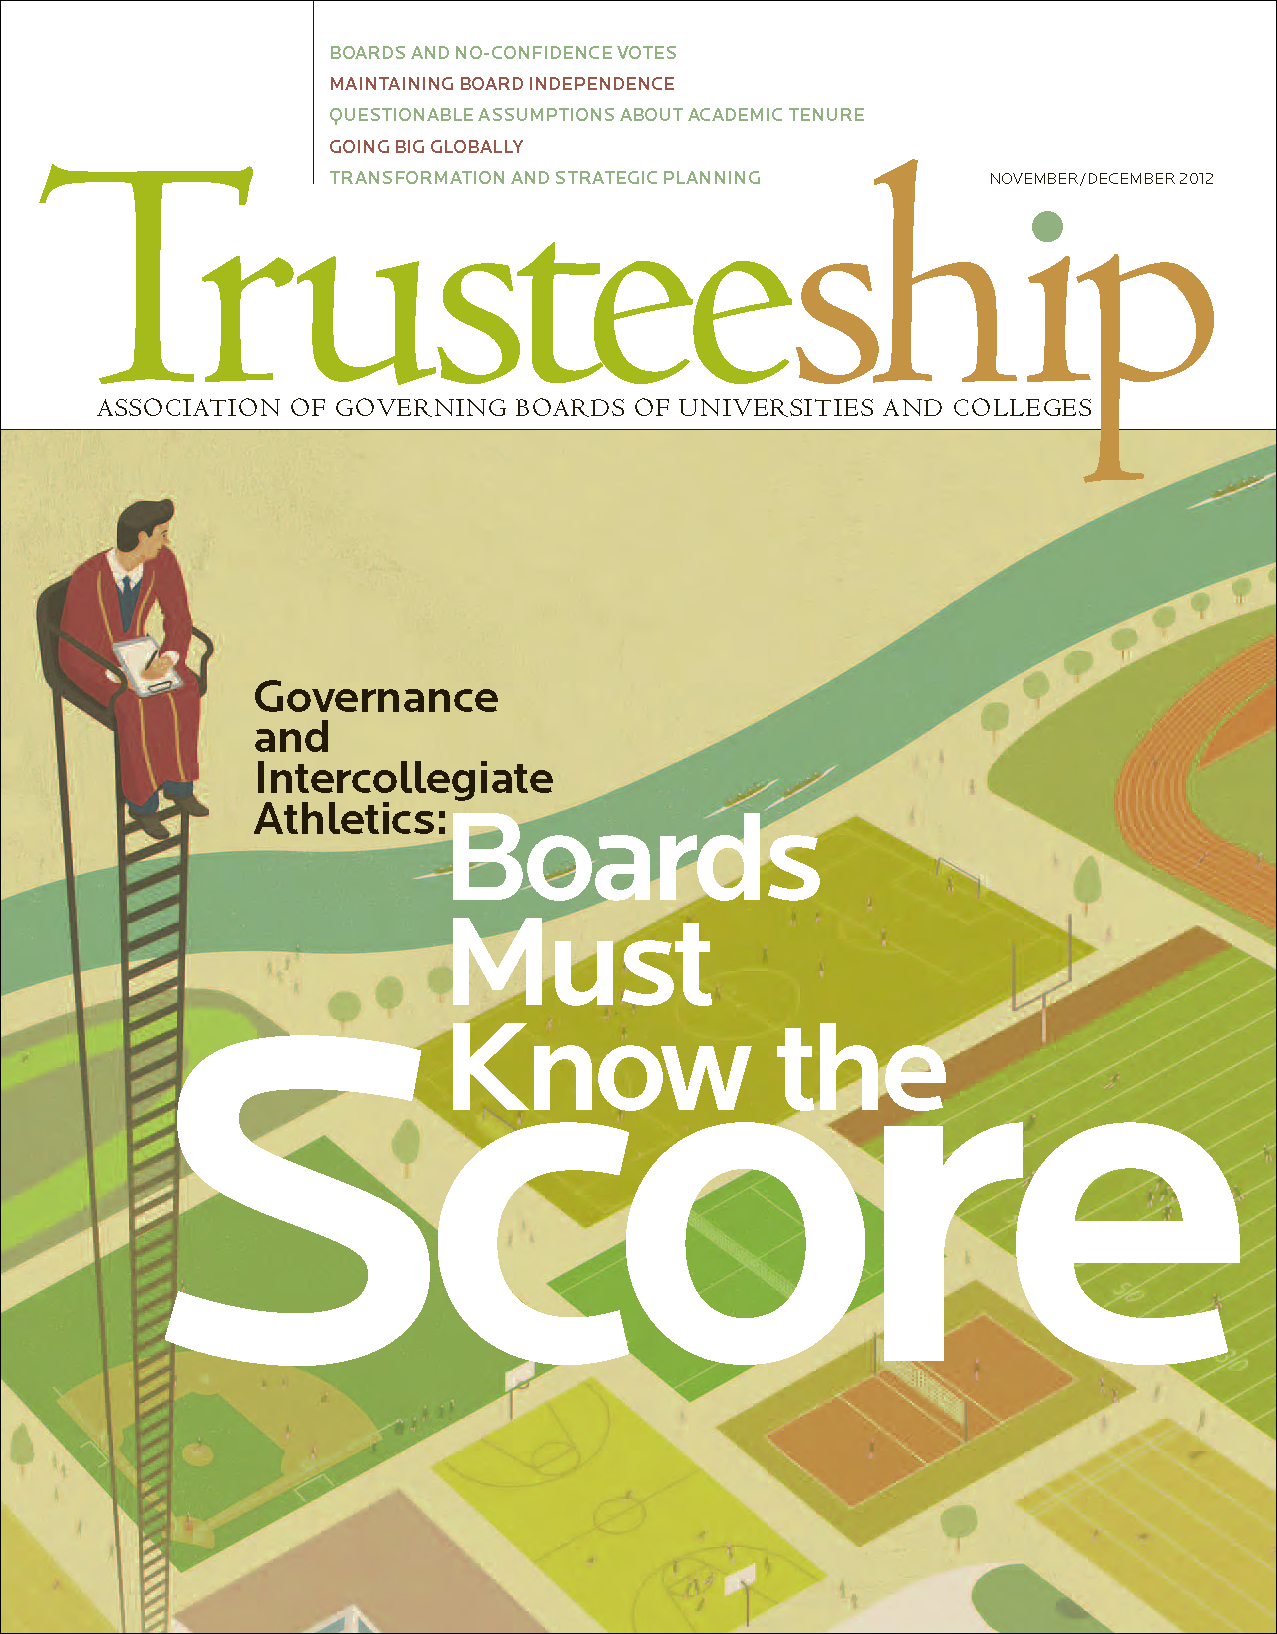 Trusteeship Issue: Governance and Intercollegiate Athletics: Boards Must Know the Score - November/December 2012